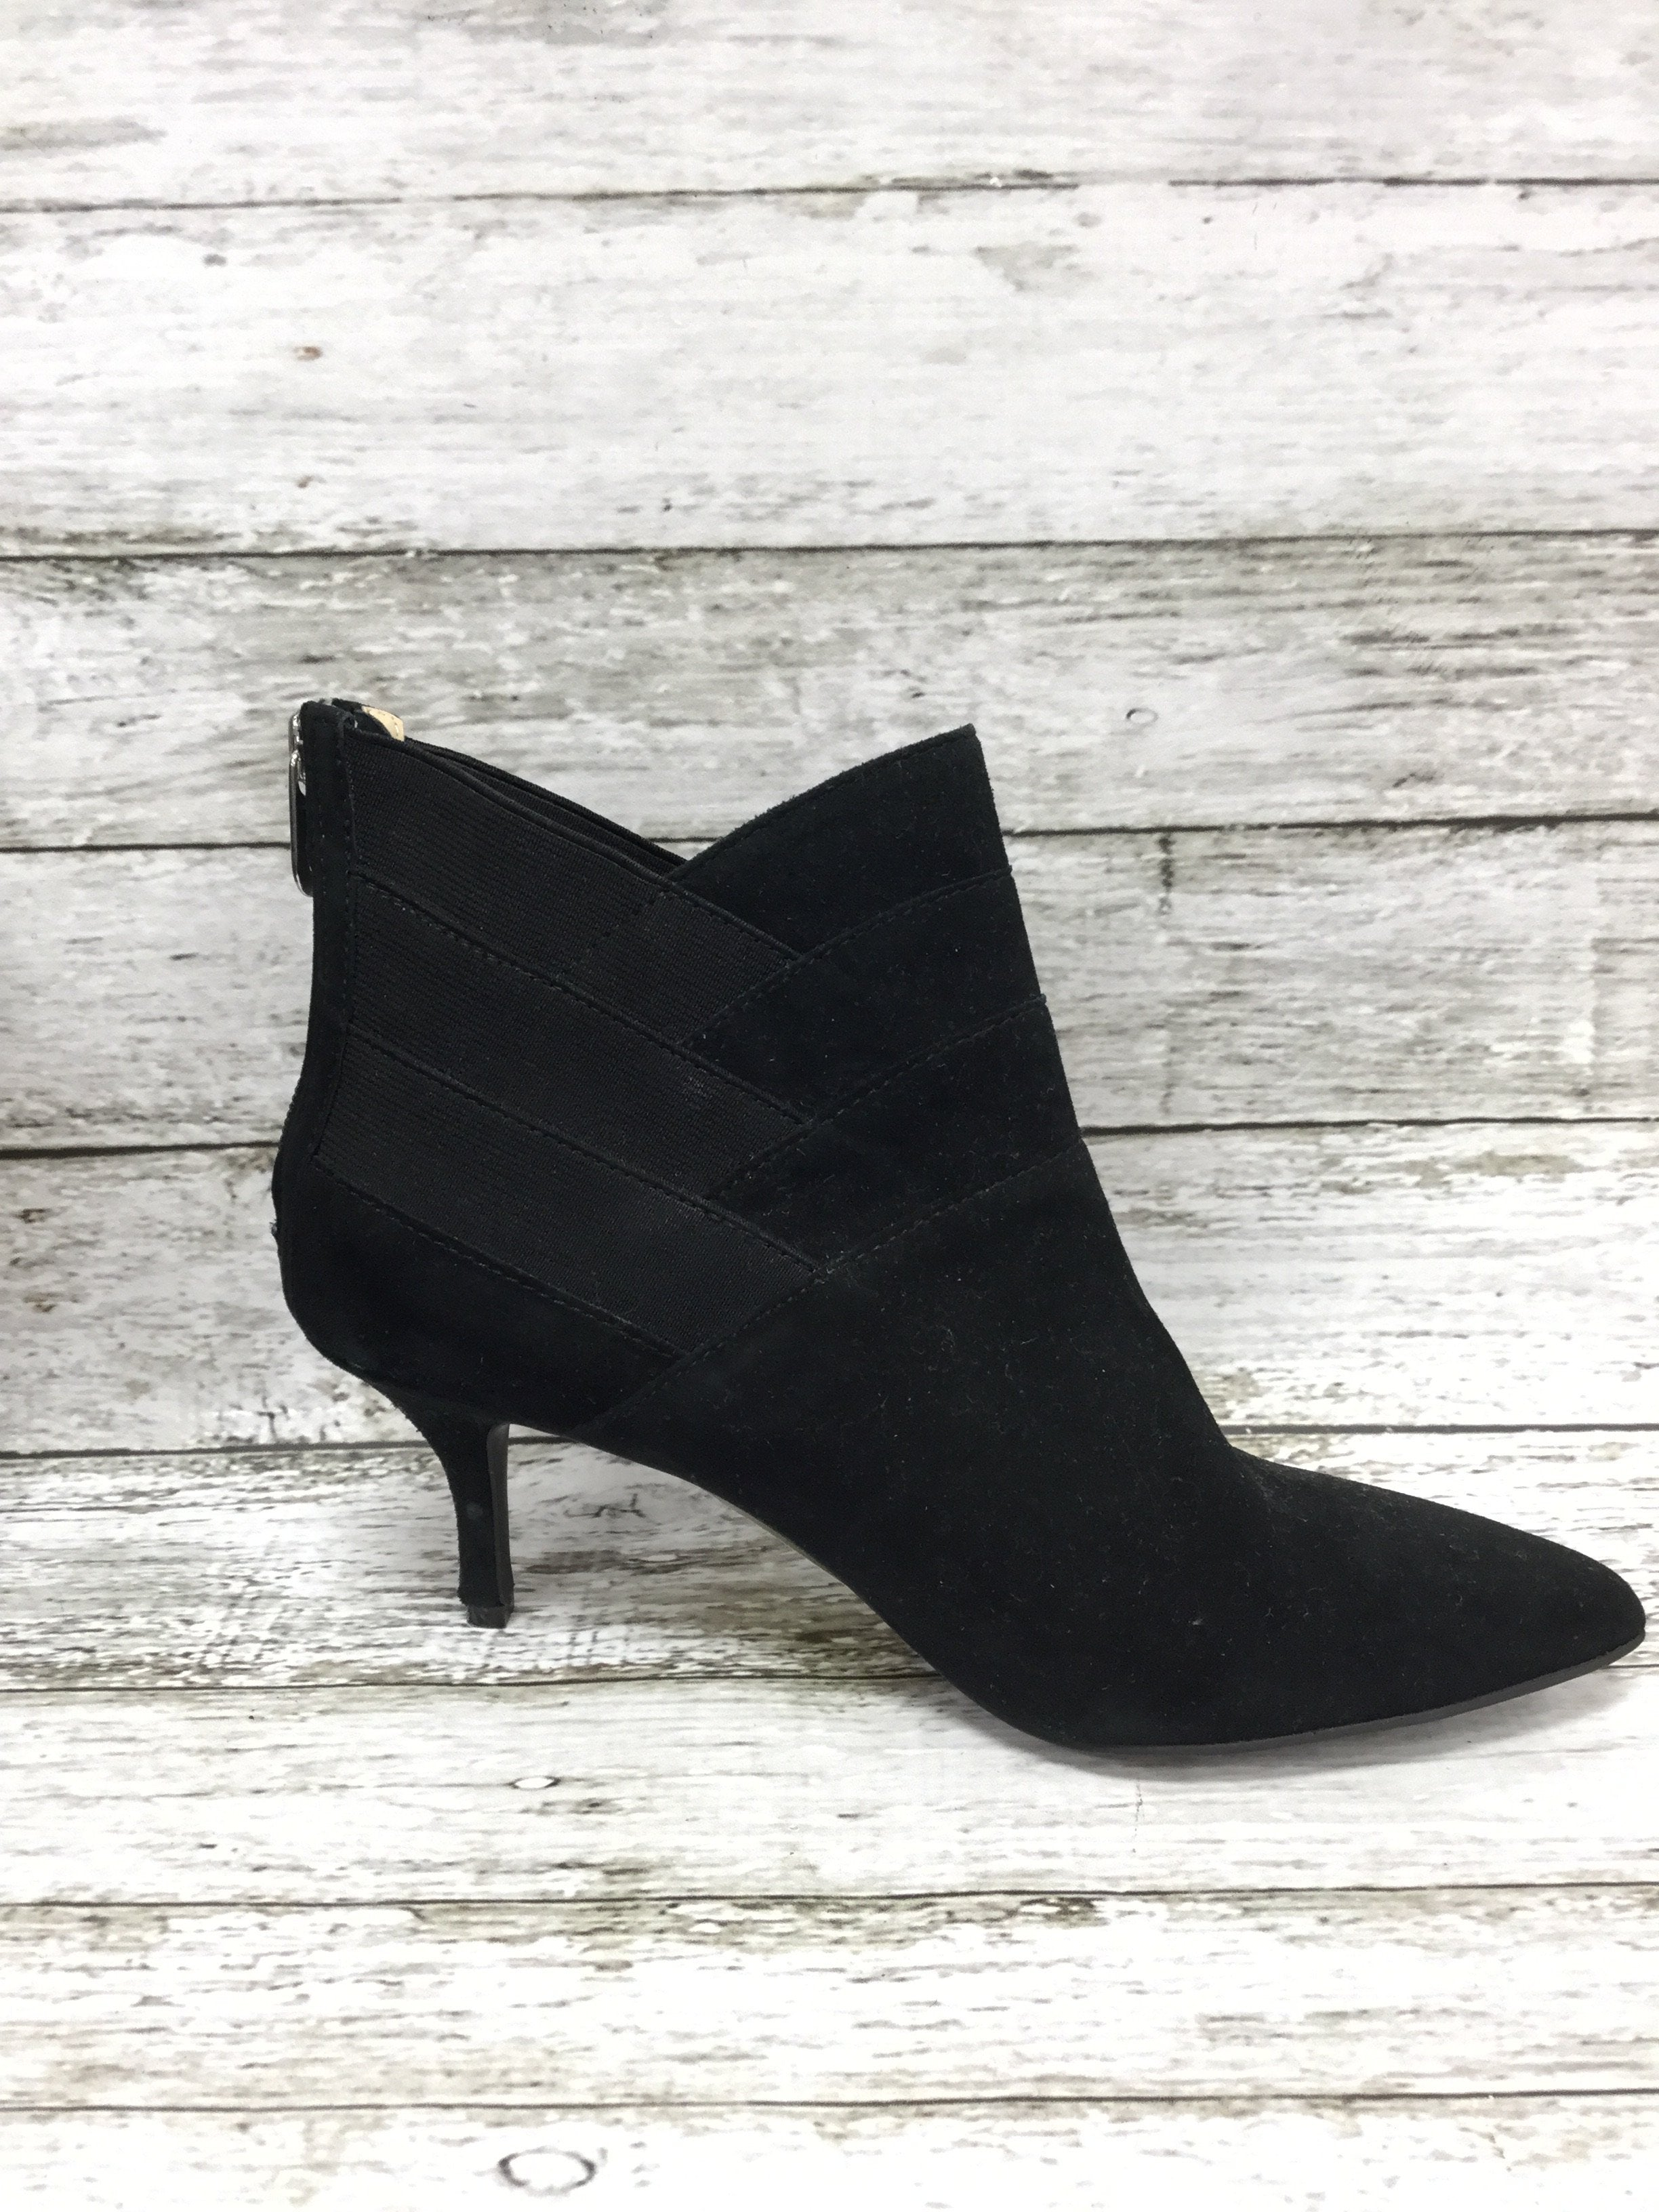 Photo #2 - brand: adrienne vittadini , style: boots ankle , color: black , size: 7.5 , sku: 127-3371-41625, , suede booties with diagonal elastic and suede detail!